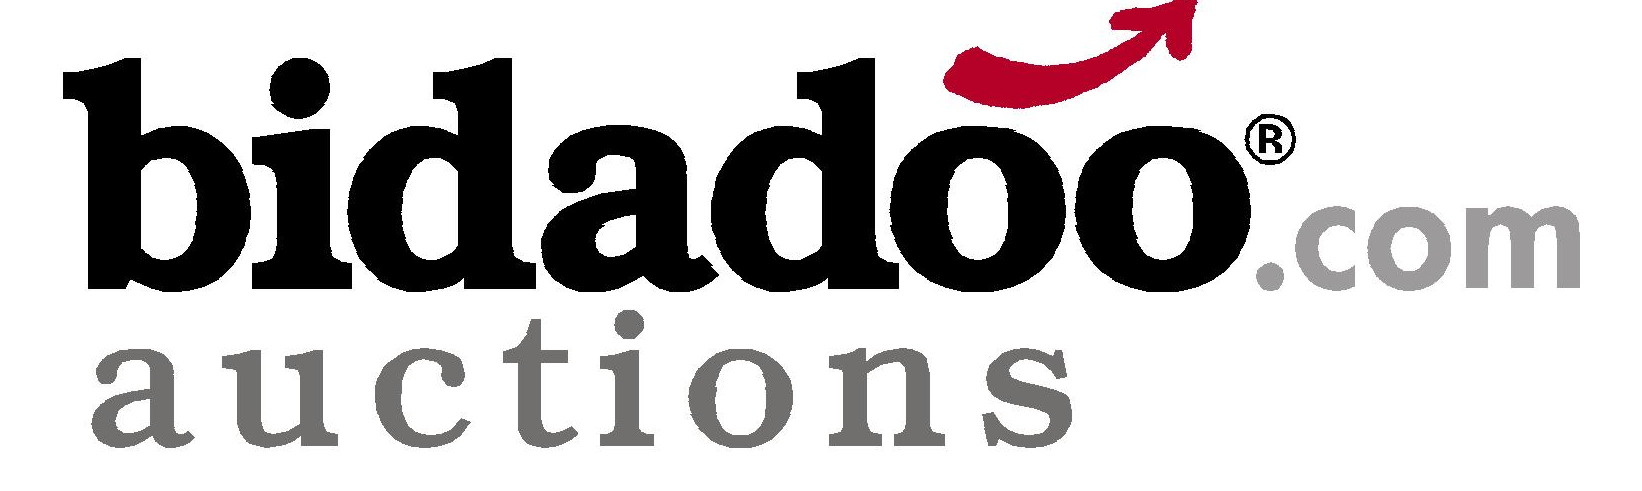 Used Equipment for Sale in Online Auction | bidadoo Auctions